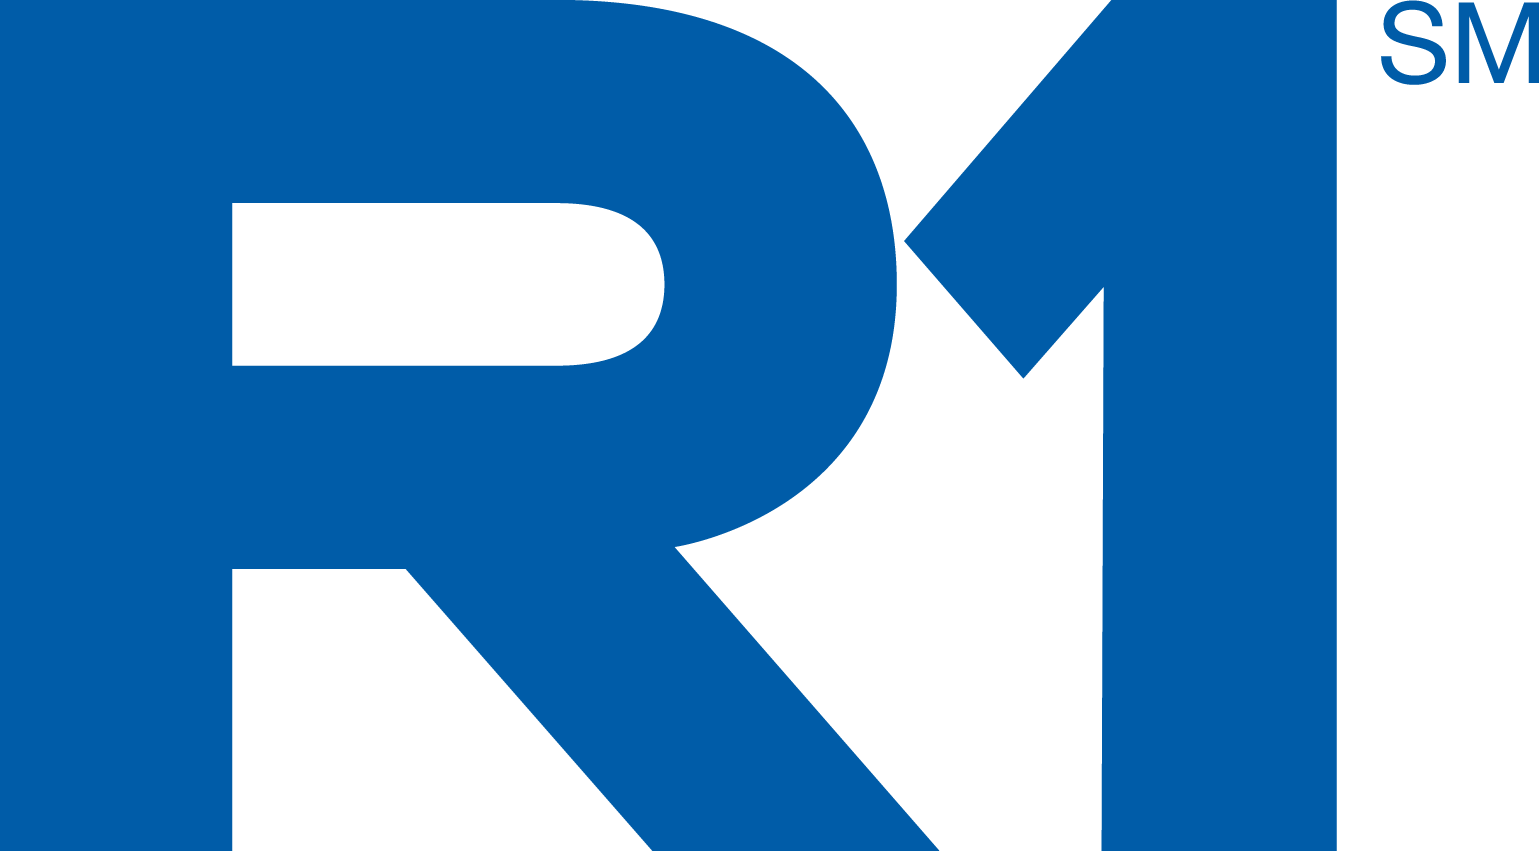 R1RMC